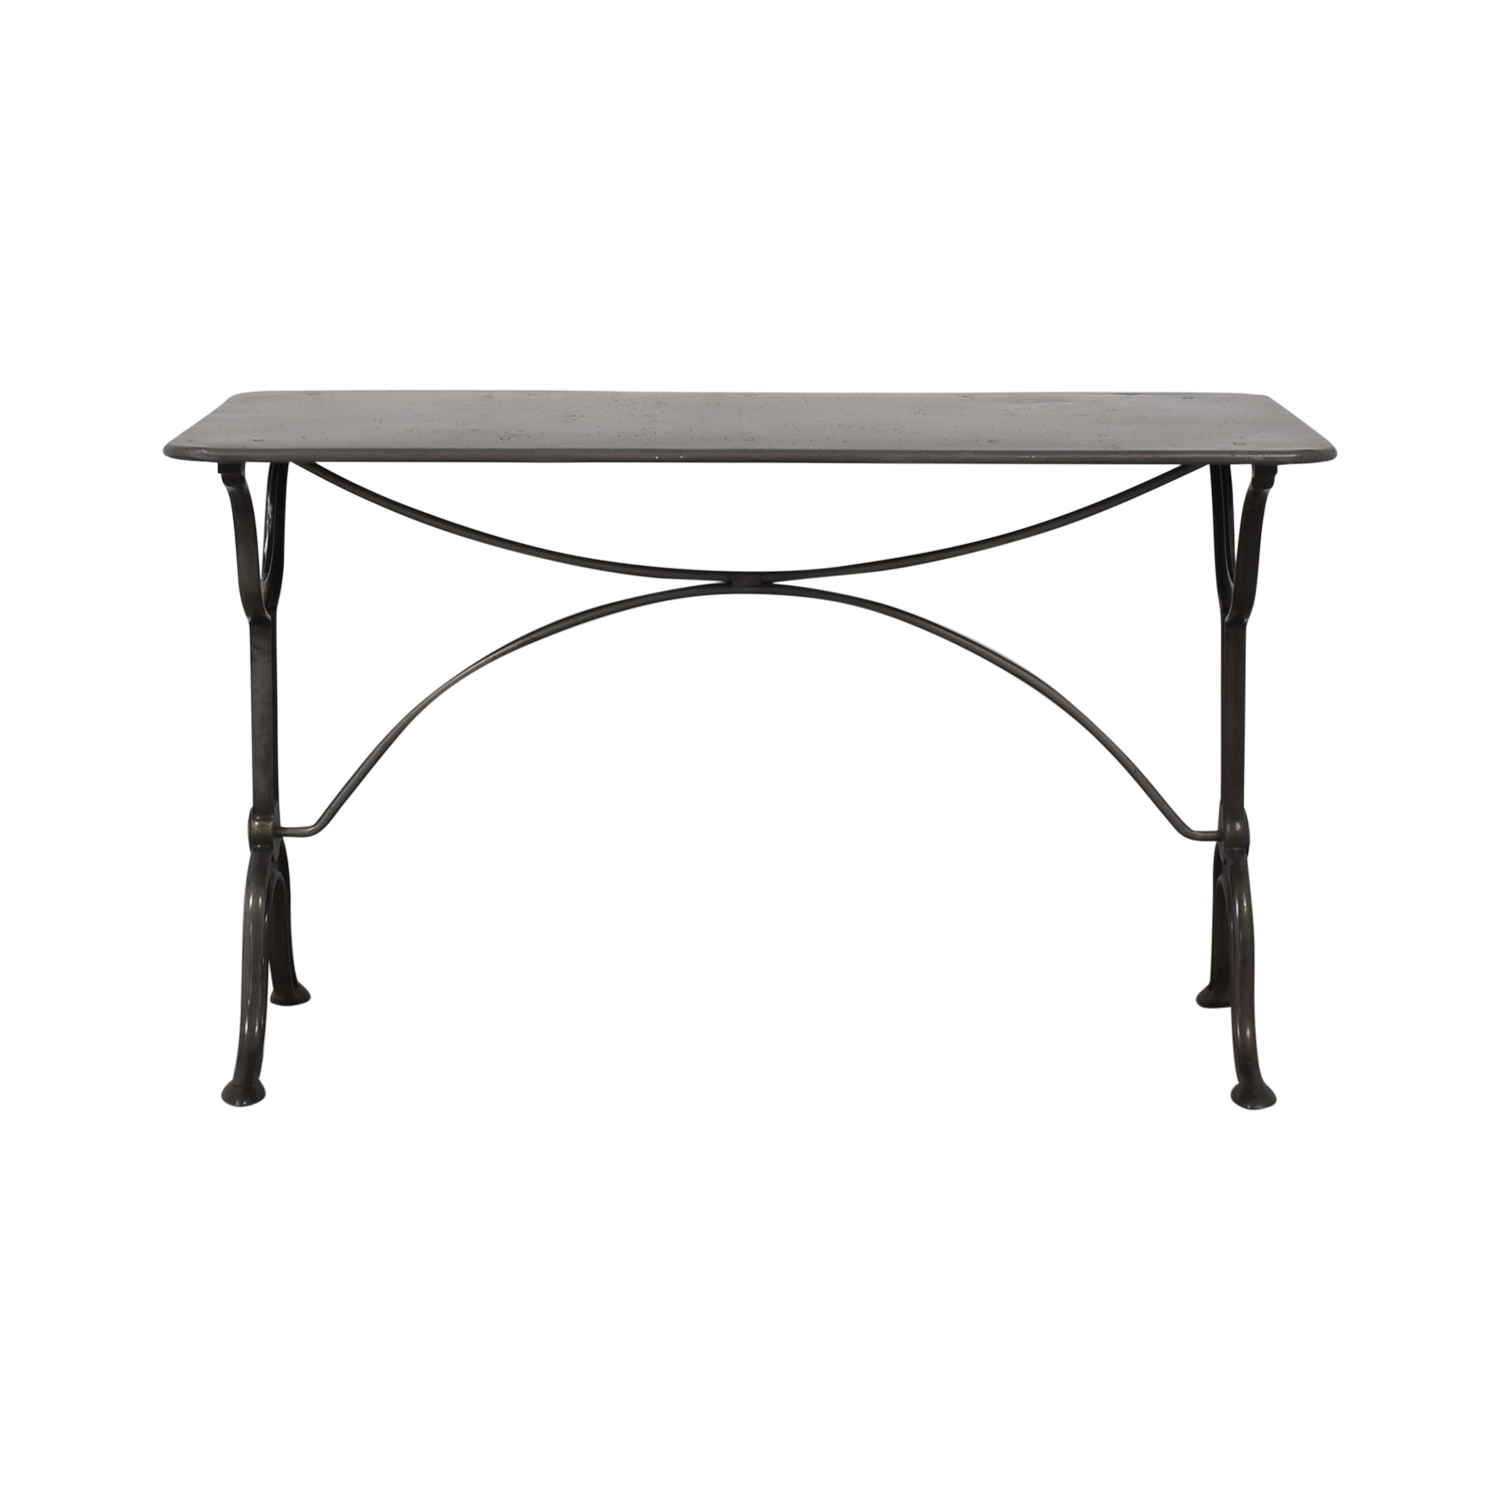 buy Restoration Hardware Restoration Hardware Garment Factory Desk online